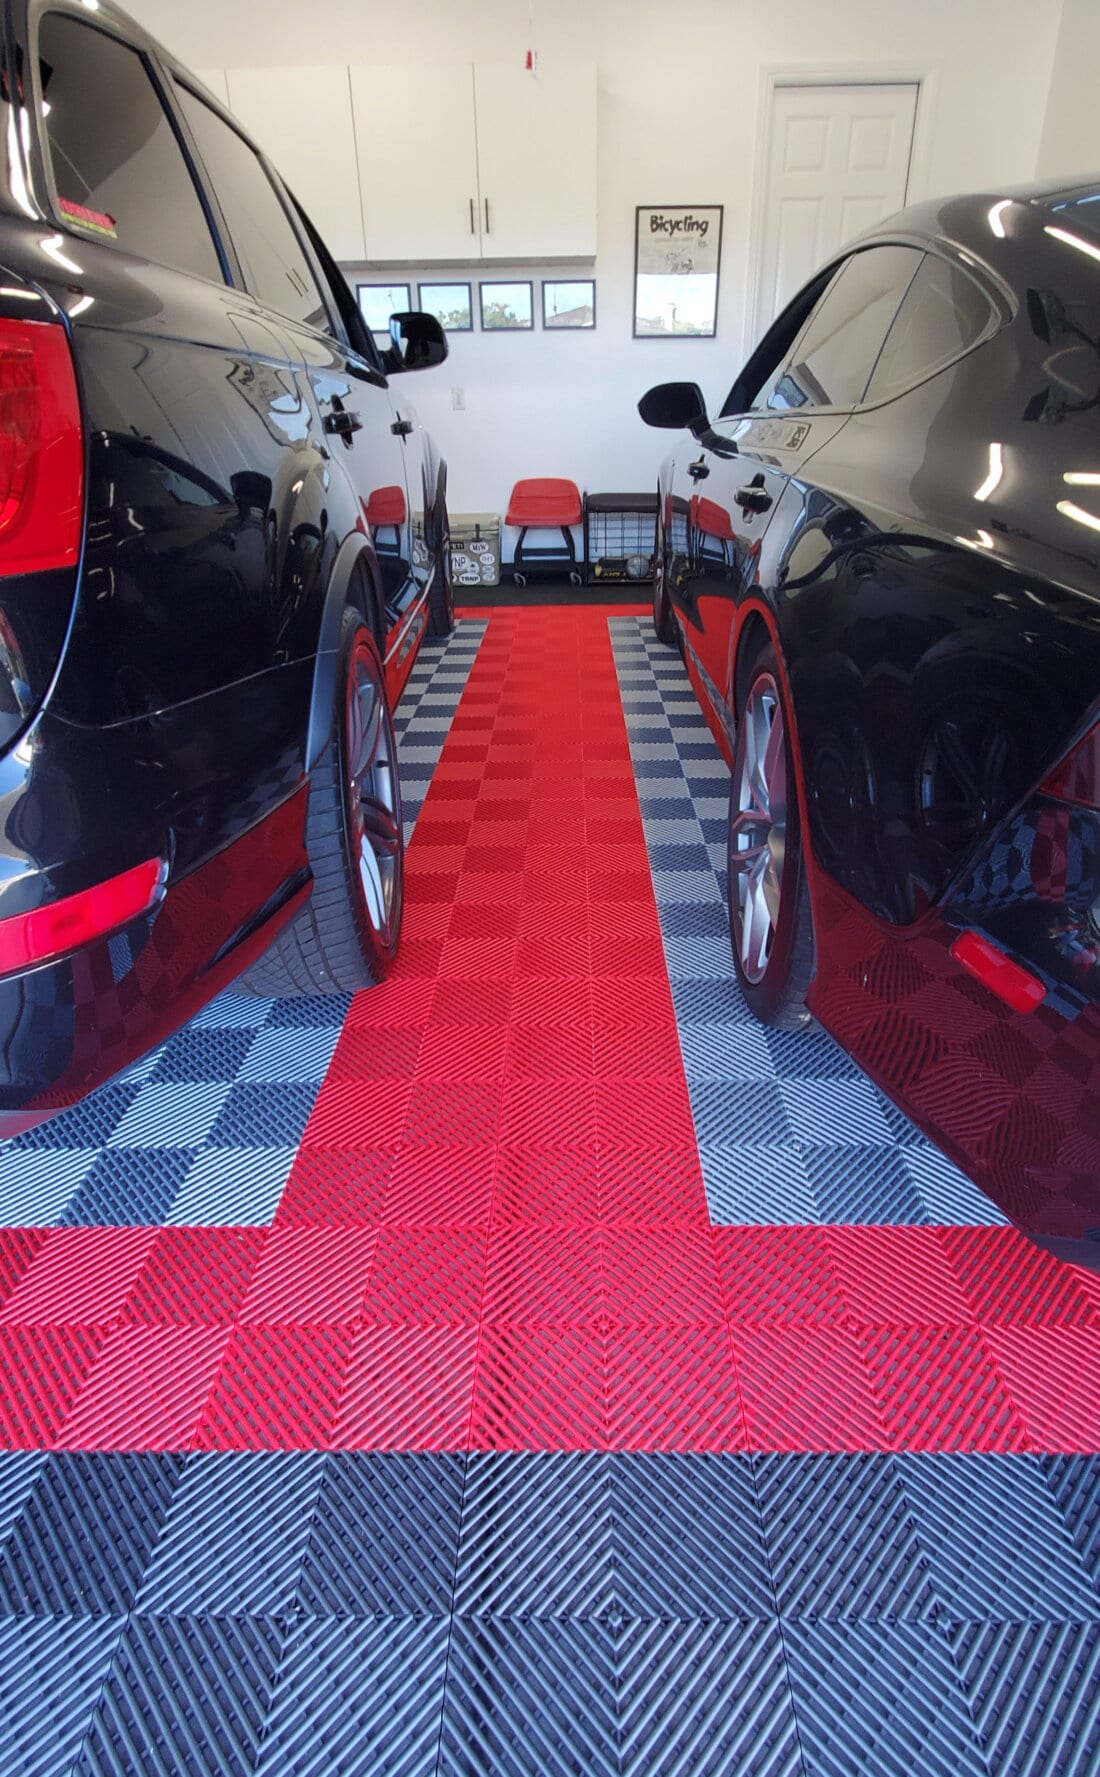 Ribbed garage floor tiles with black cars